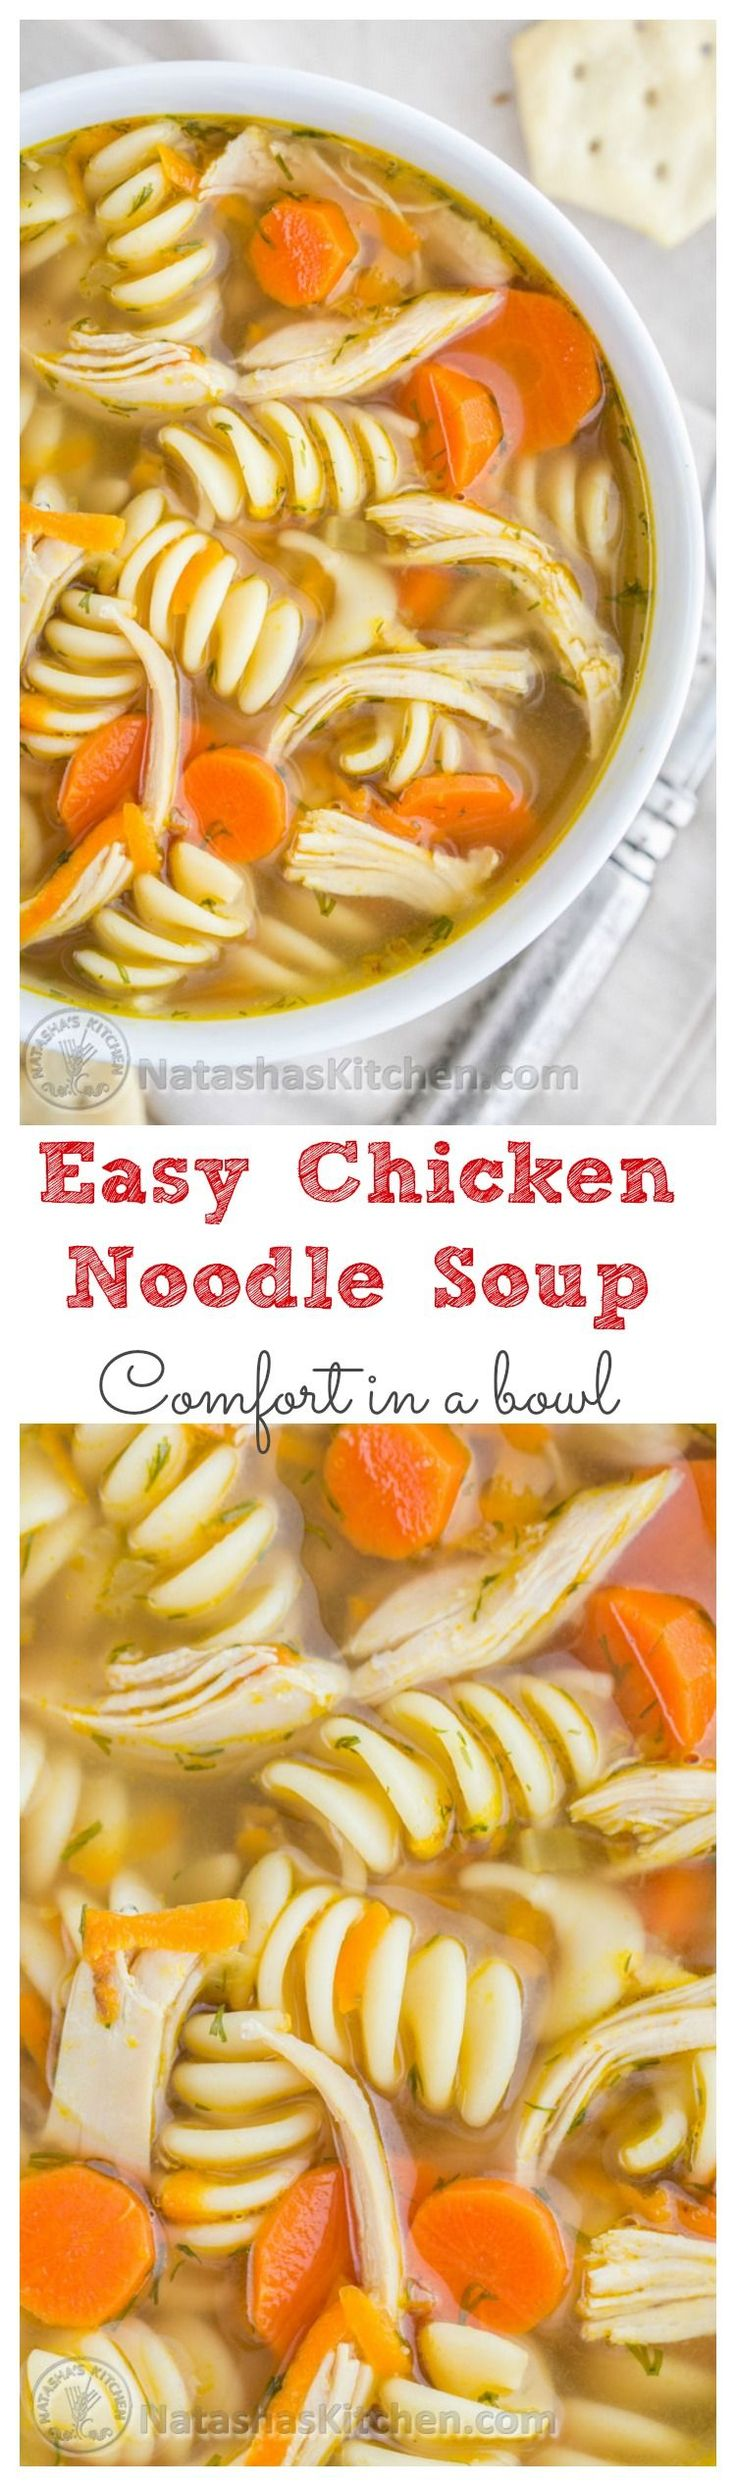 Easy and Delicious Chicken Noodle Soup, perfect after a cold day in the mountains.